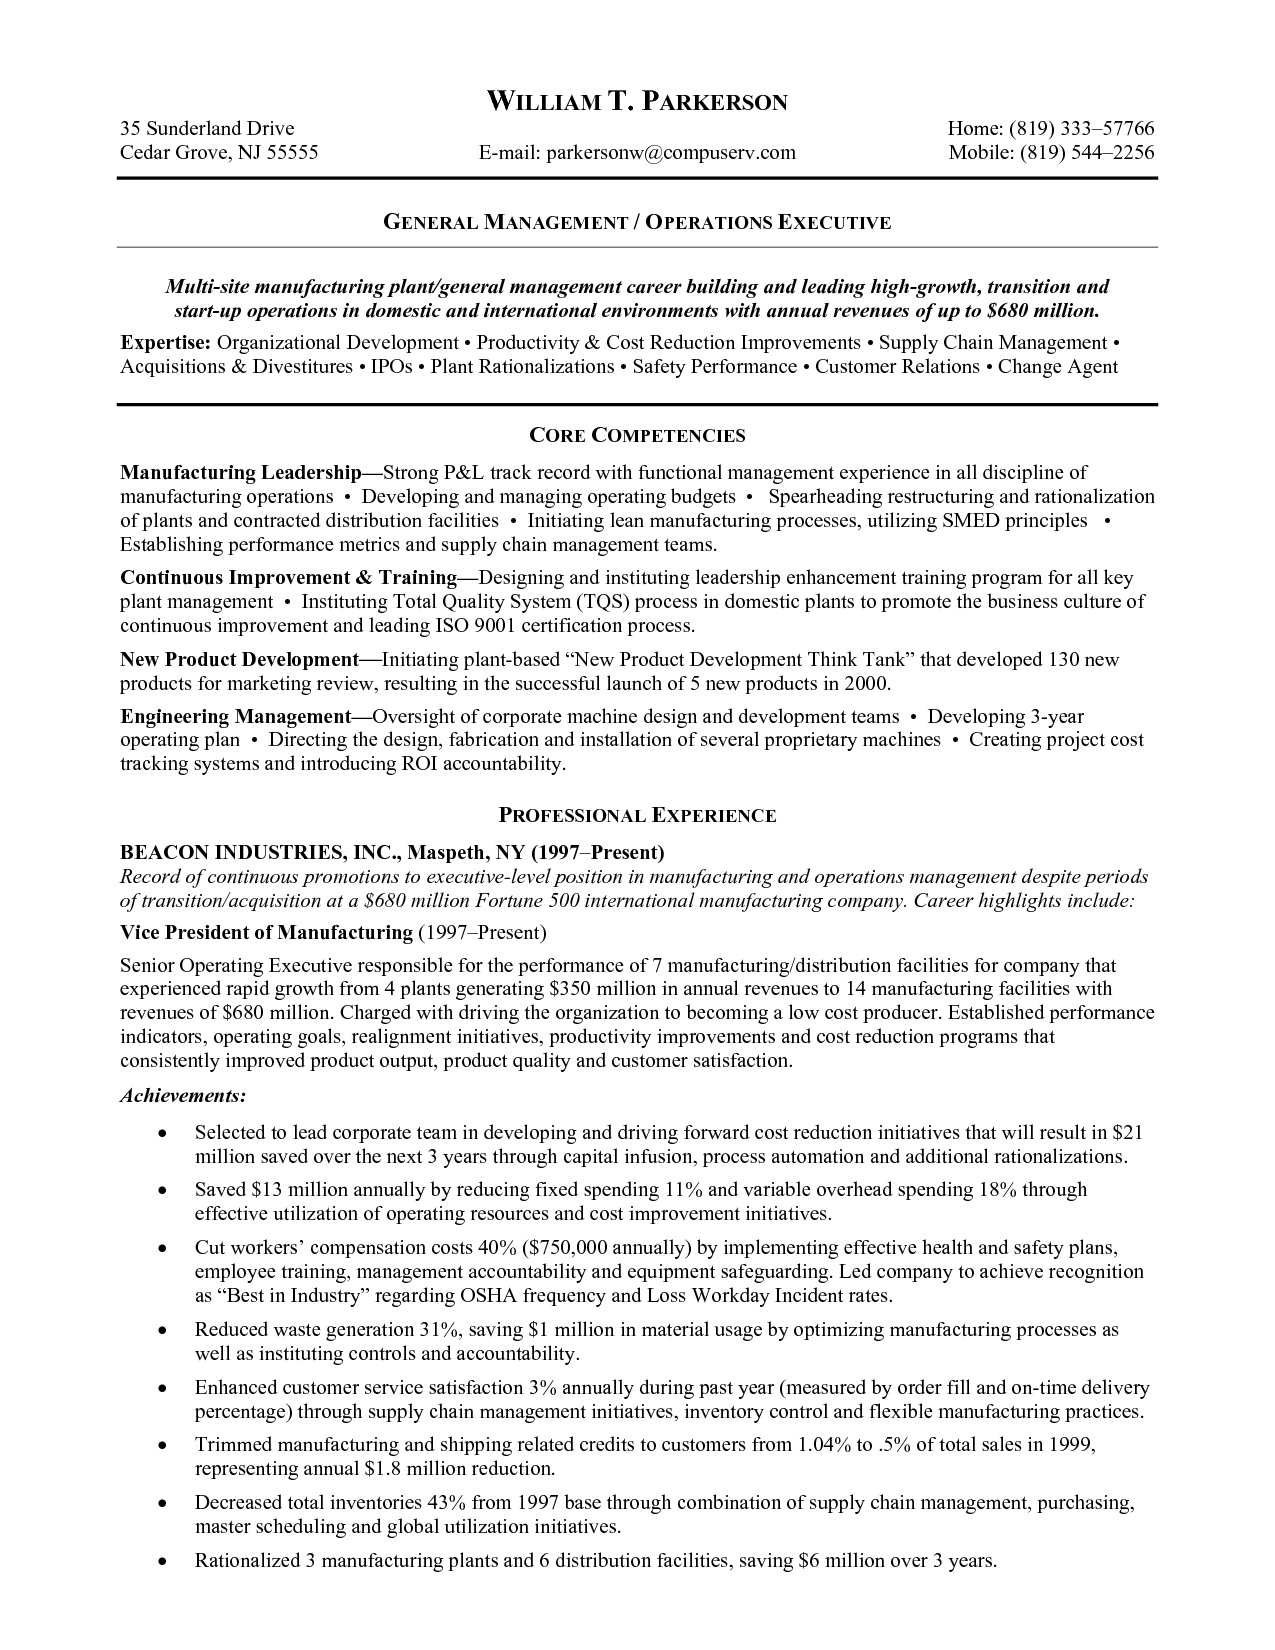 Example Of An Objective On A Resume General Manufacturing Resume Samples Objective Examples Free Edit